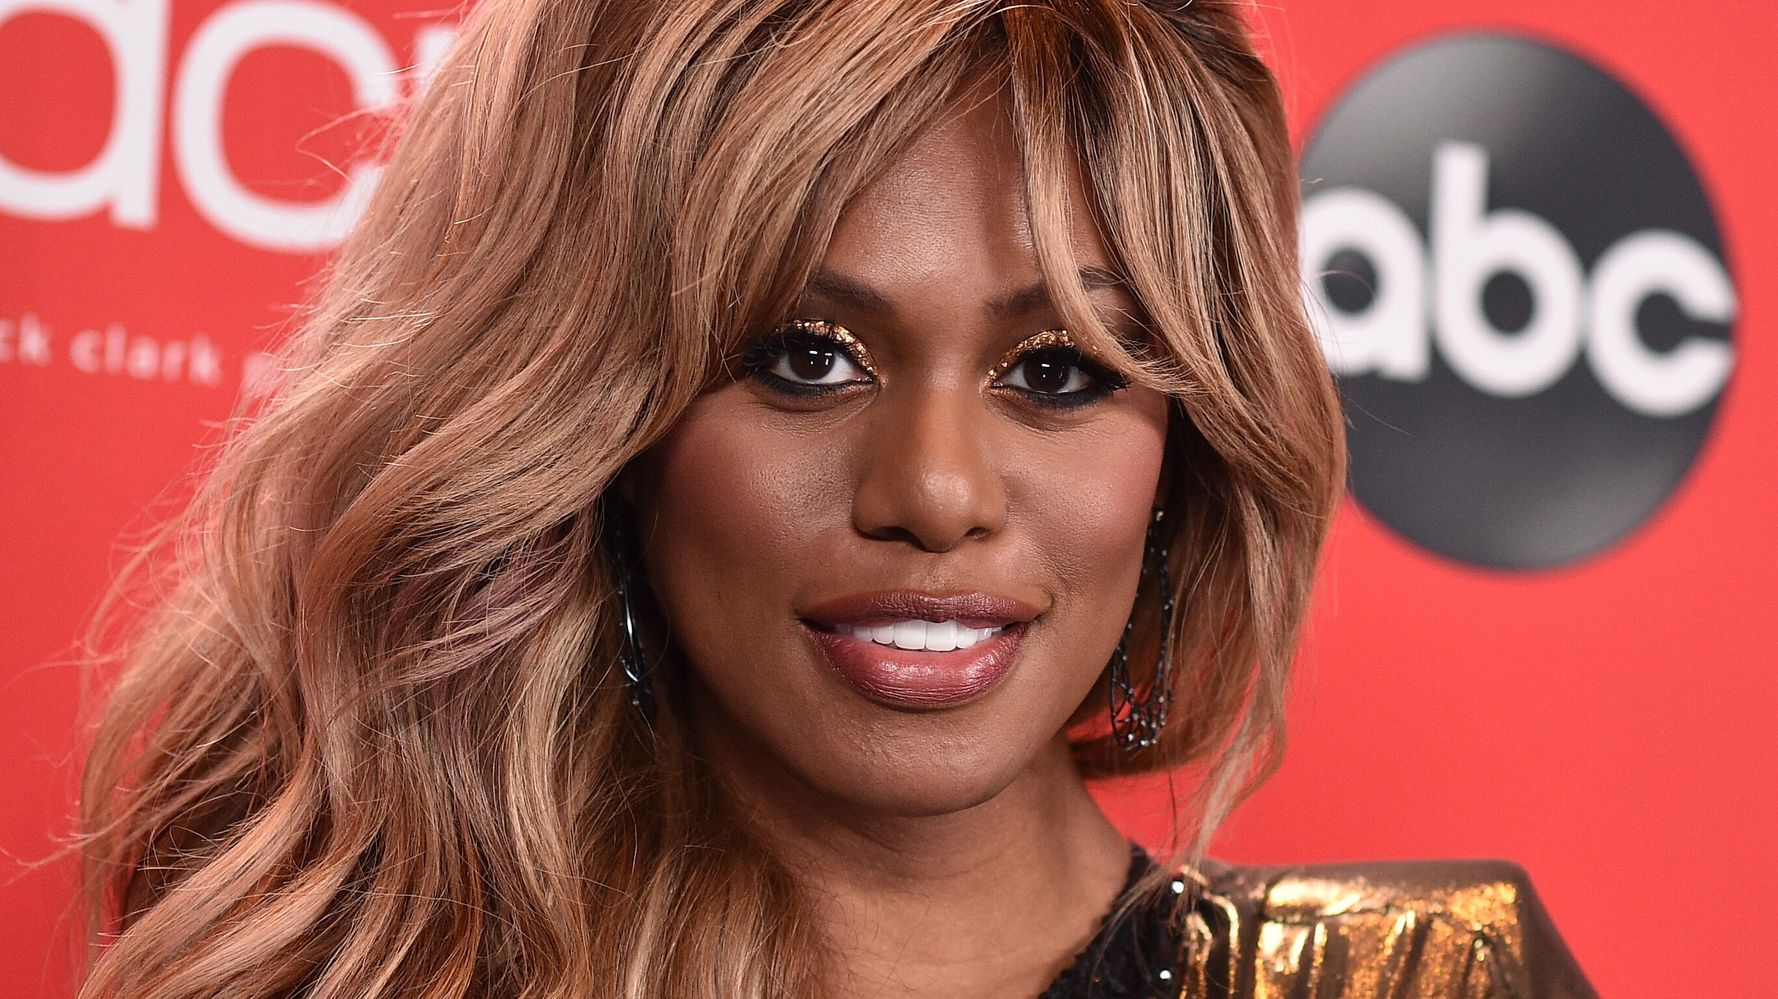 Laverne Cox Wants To Reframe Narrative Around Transgender Rights With New Project